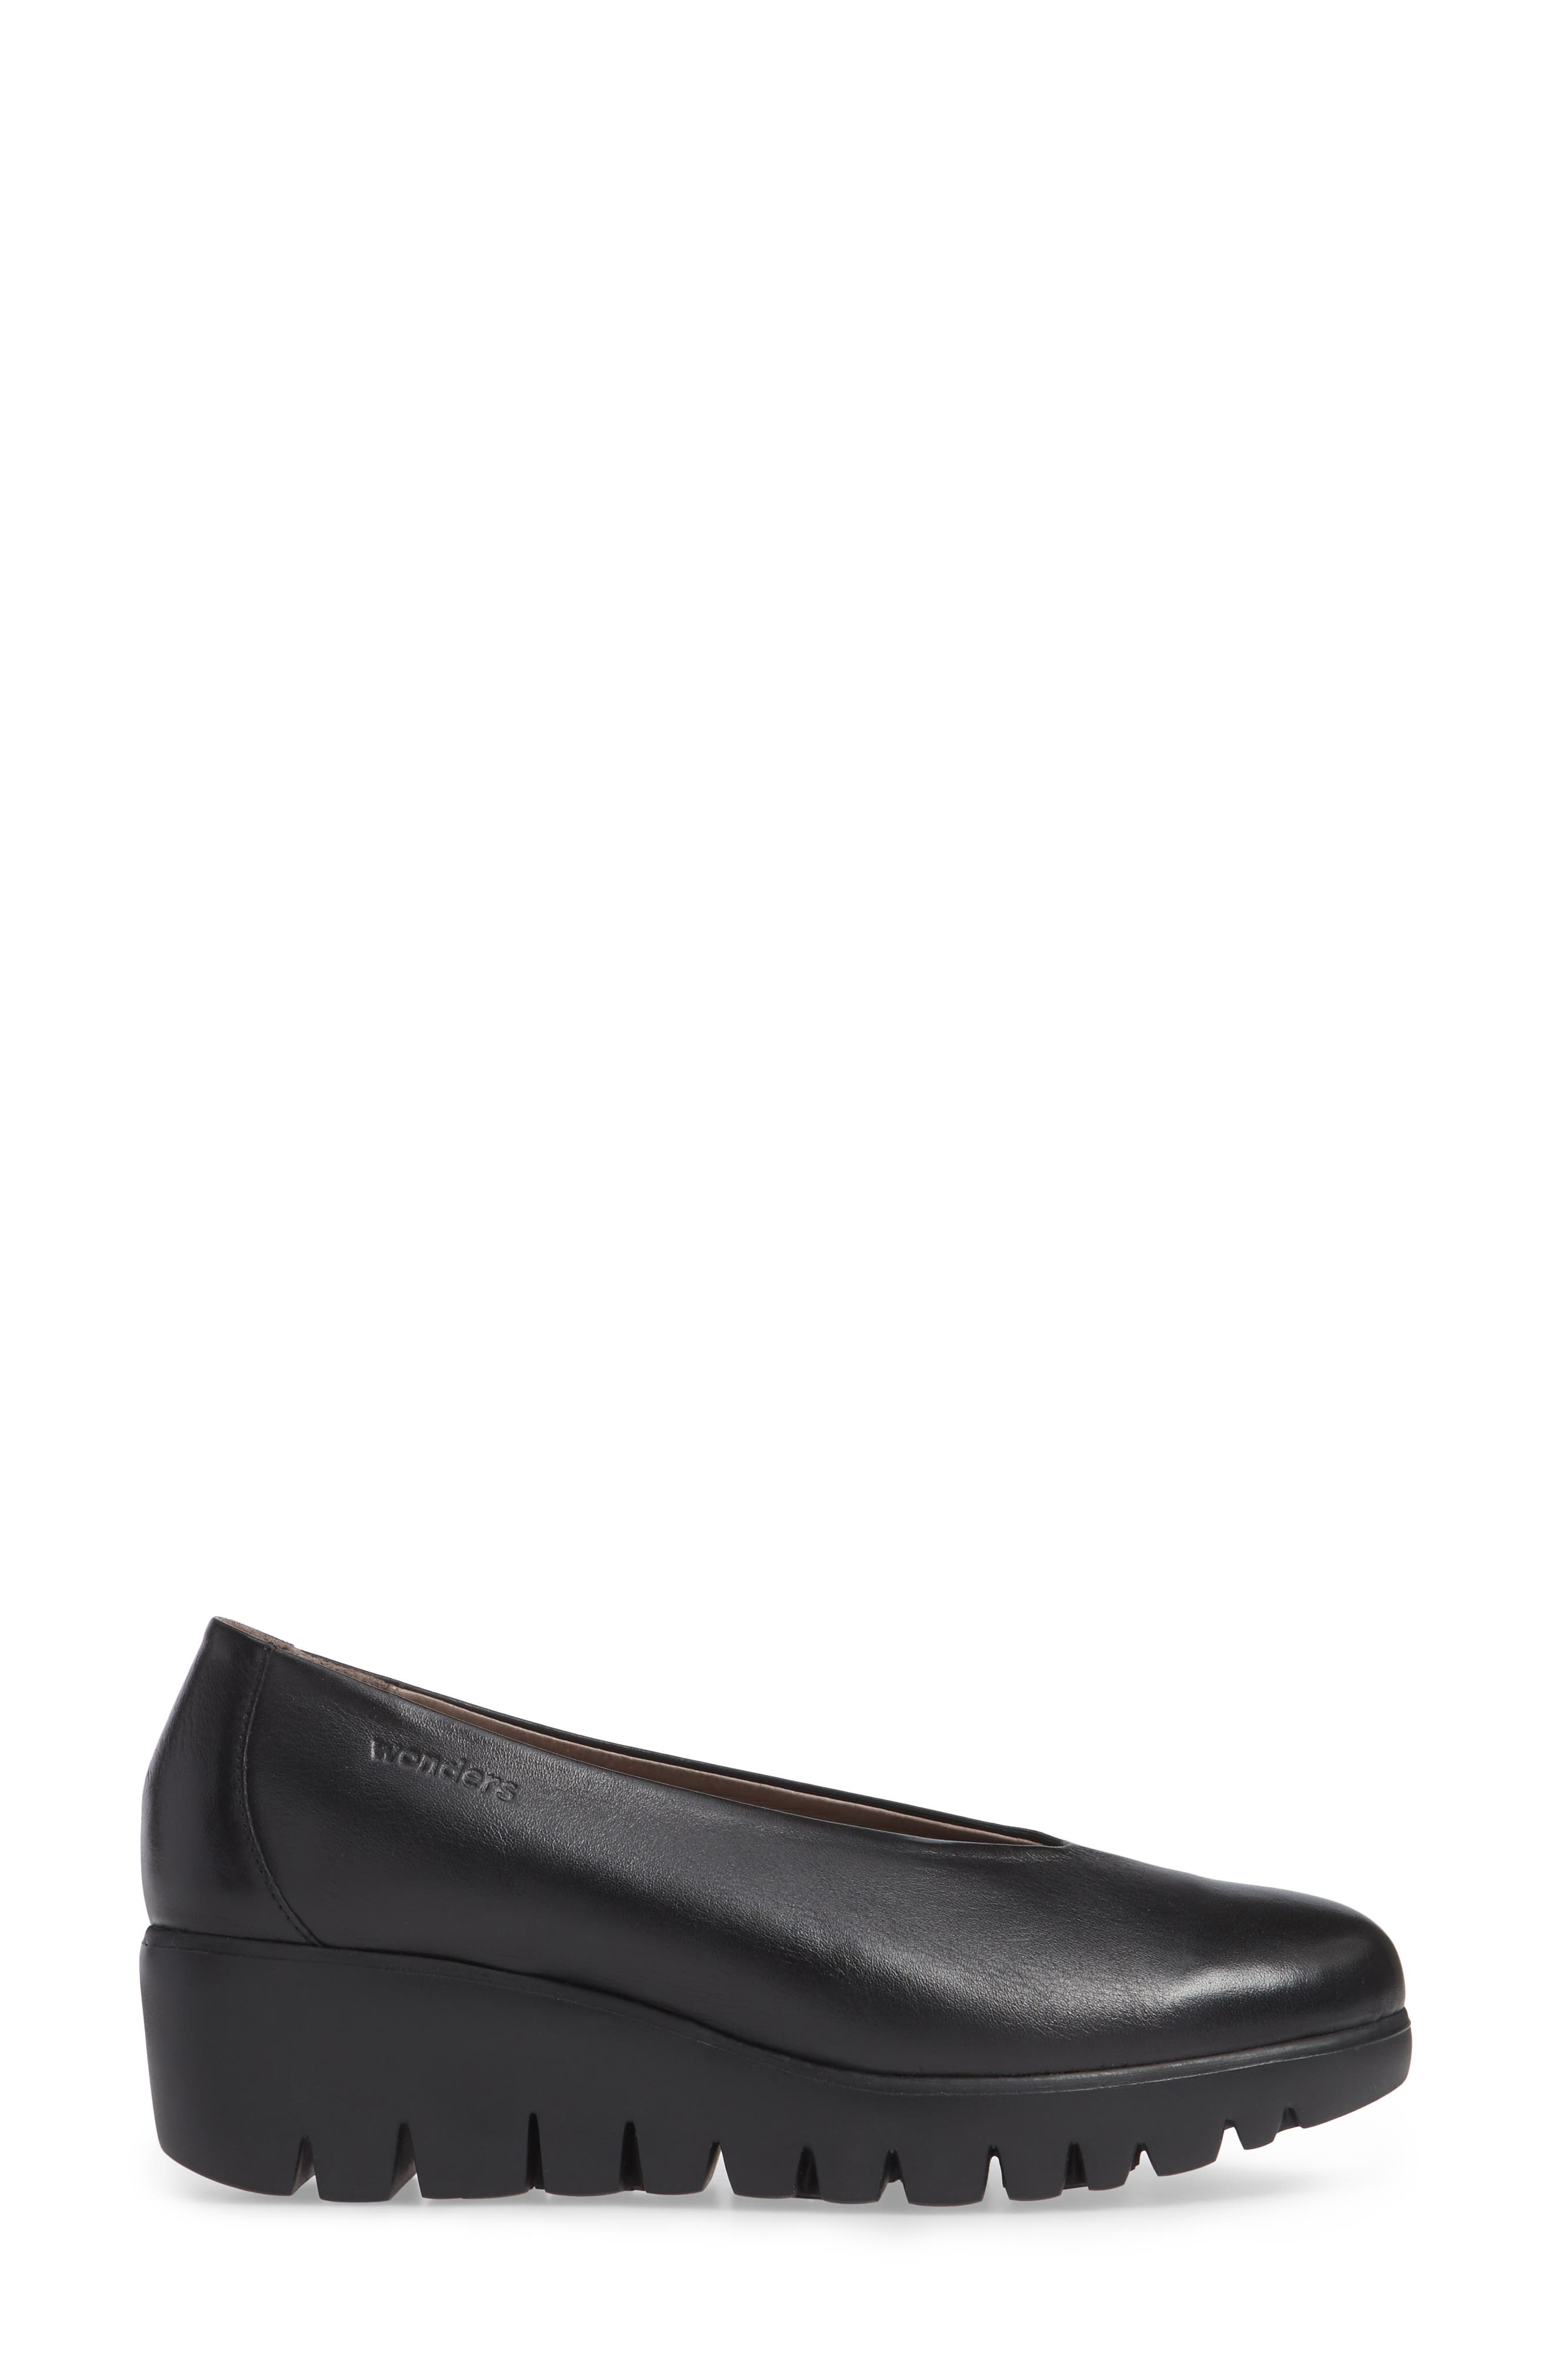 Extralite Wedge Pump,                             Alternate thumbnail 3, color,                             BLACK LEATHER